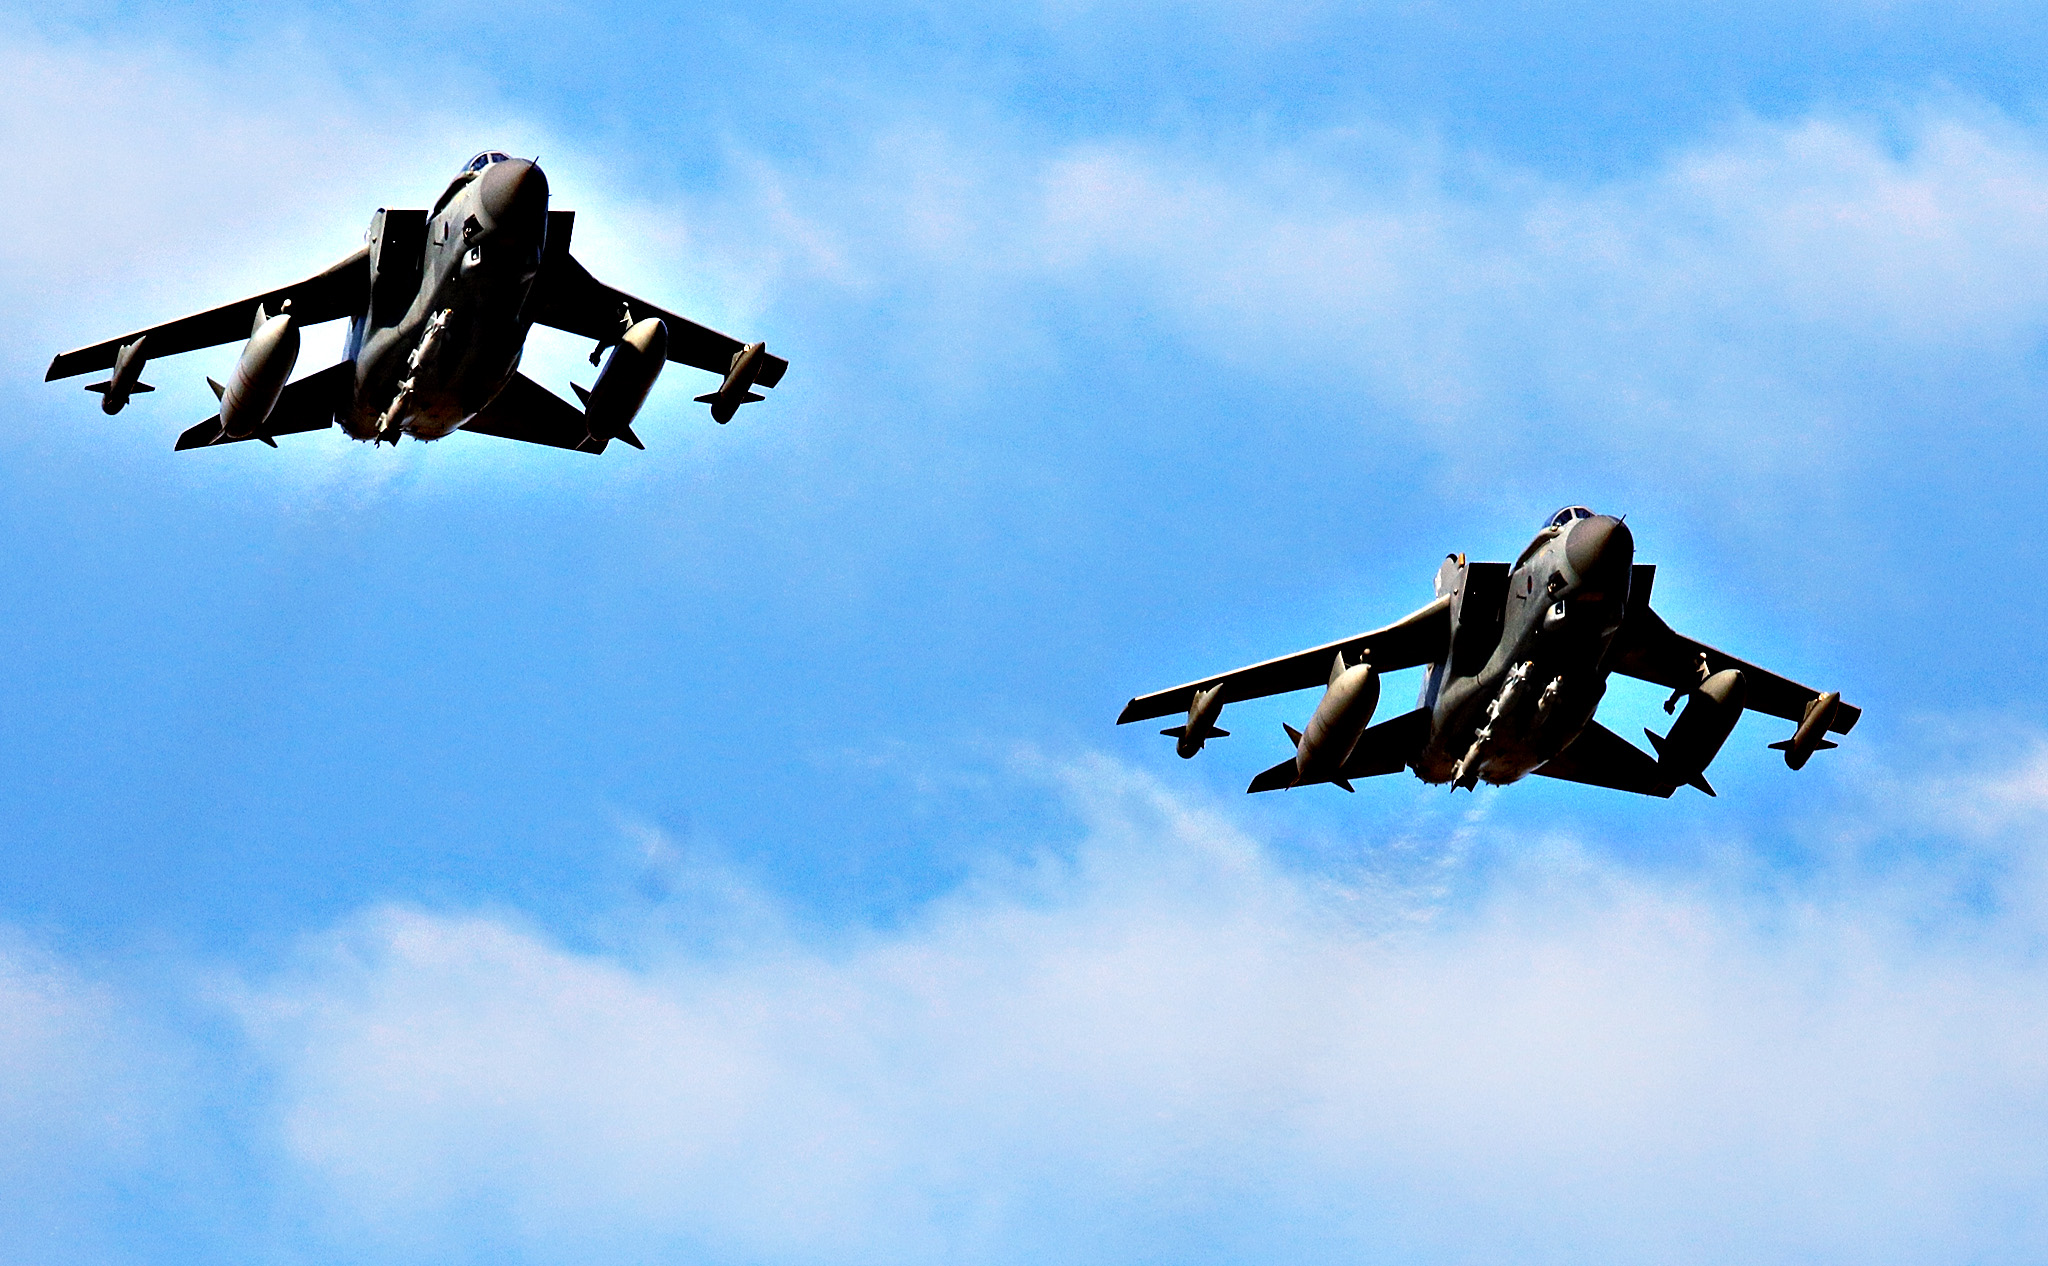 RAF Tornados return to RAF Akrotiri after a sortie on Thursday in Akrotiri, Cyprus. The British Parilament voted 397 to 223 yesterday in favor of joining international airstrikes in Syria.